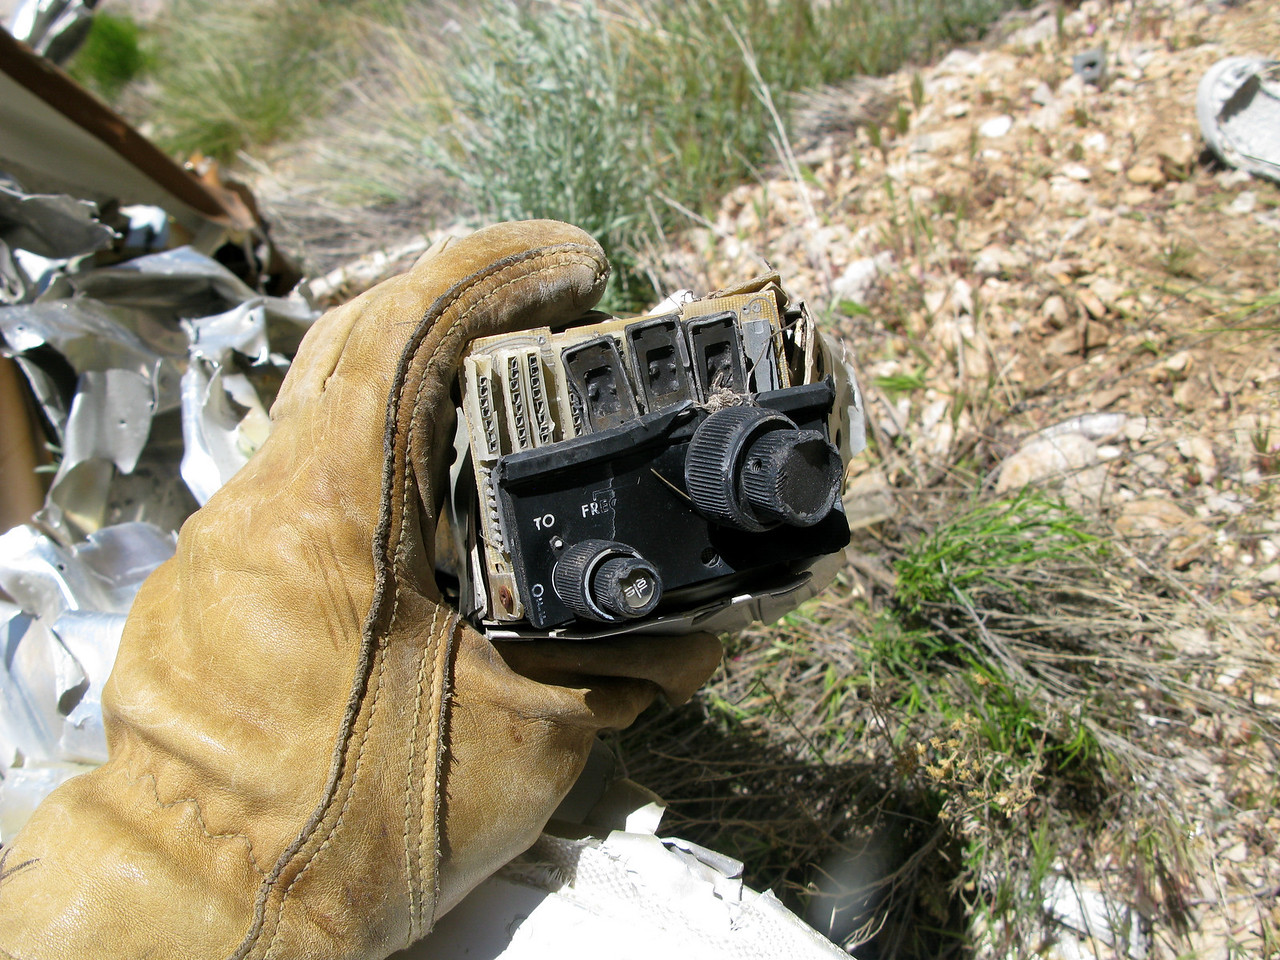 This VIR-351 Digital Navigation Receiver was also manufactured by the Collins Radio Co. <br /> <br /> According to the accident report, Captain Gustafson was using the navigation information from this radio in an attempt to determine his position as he flew through the canyon.